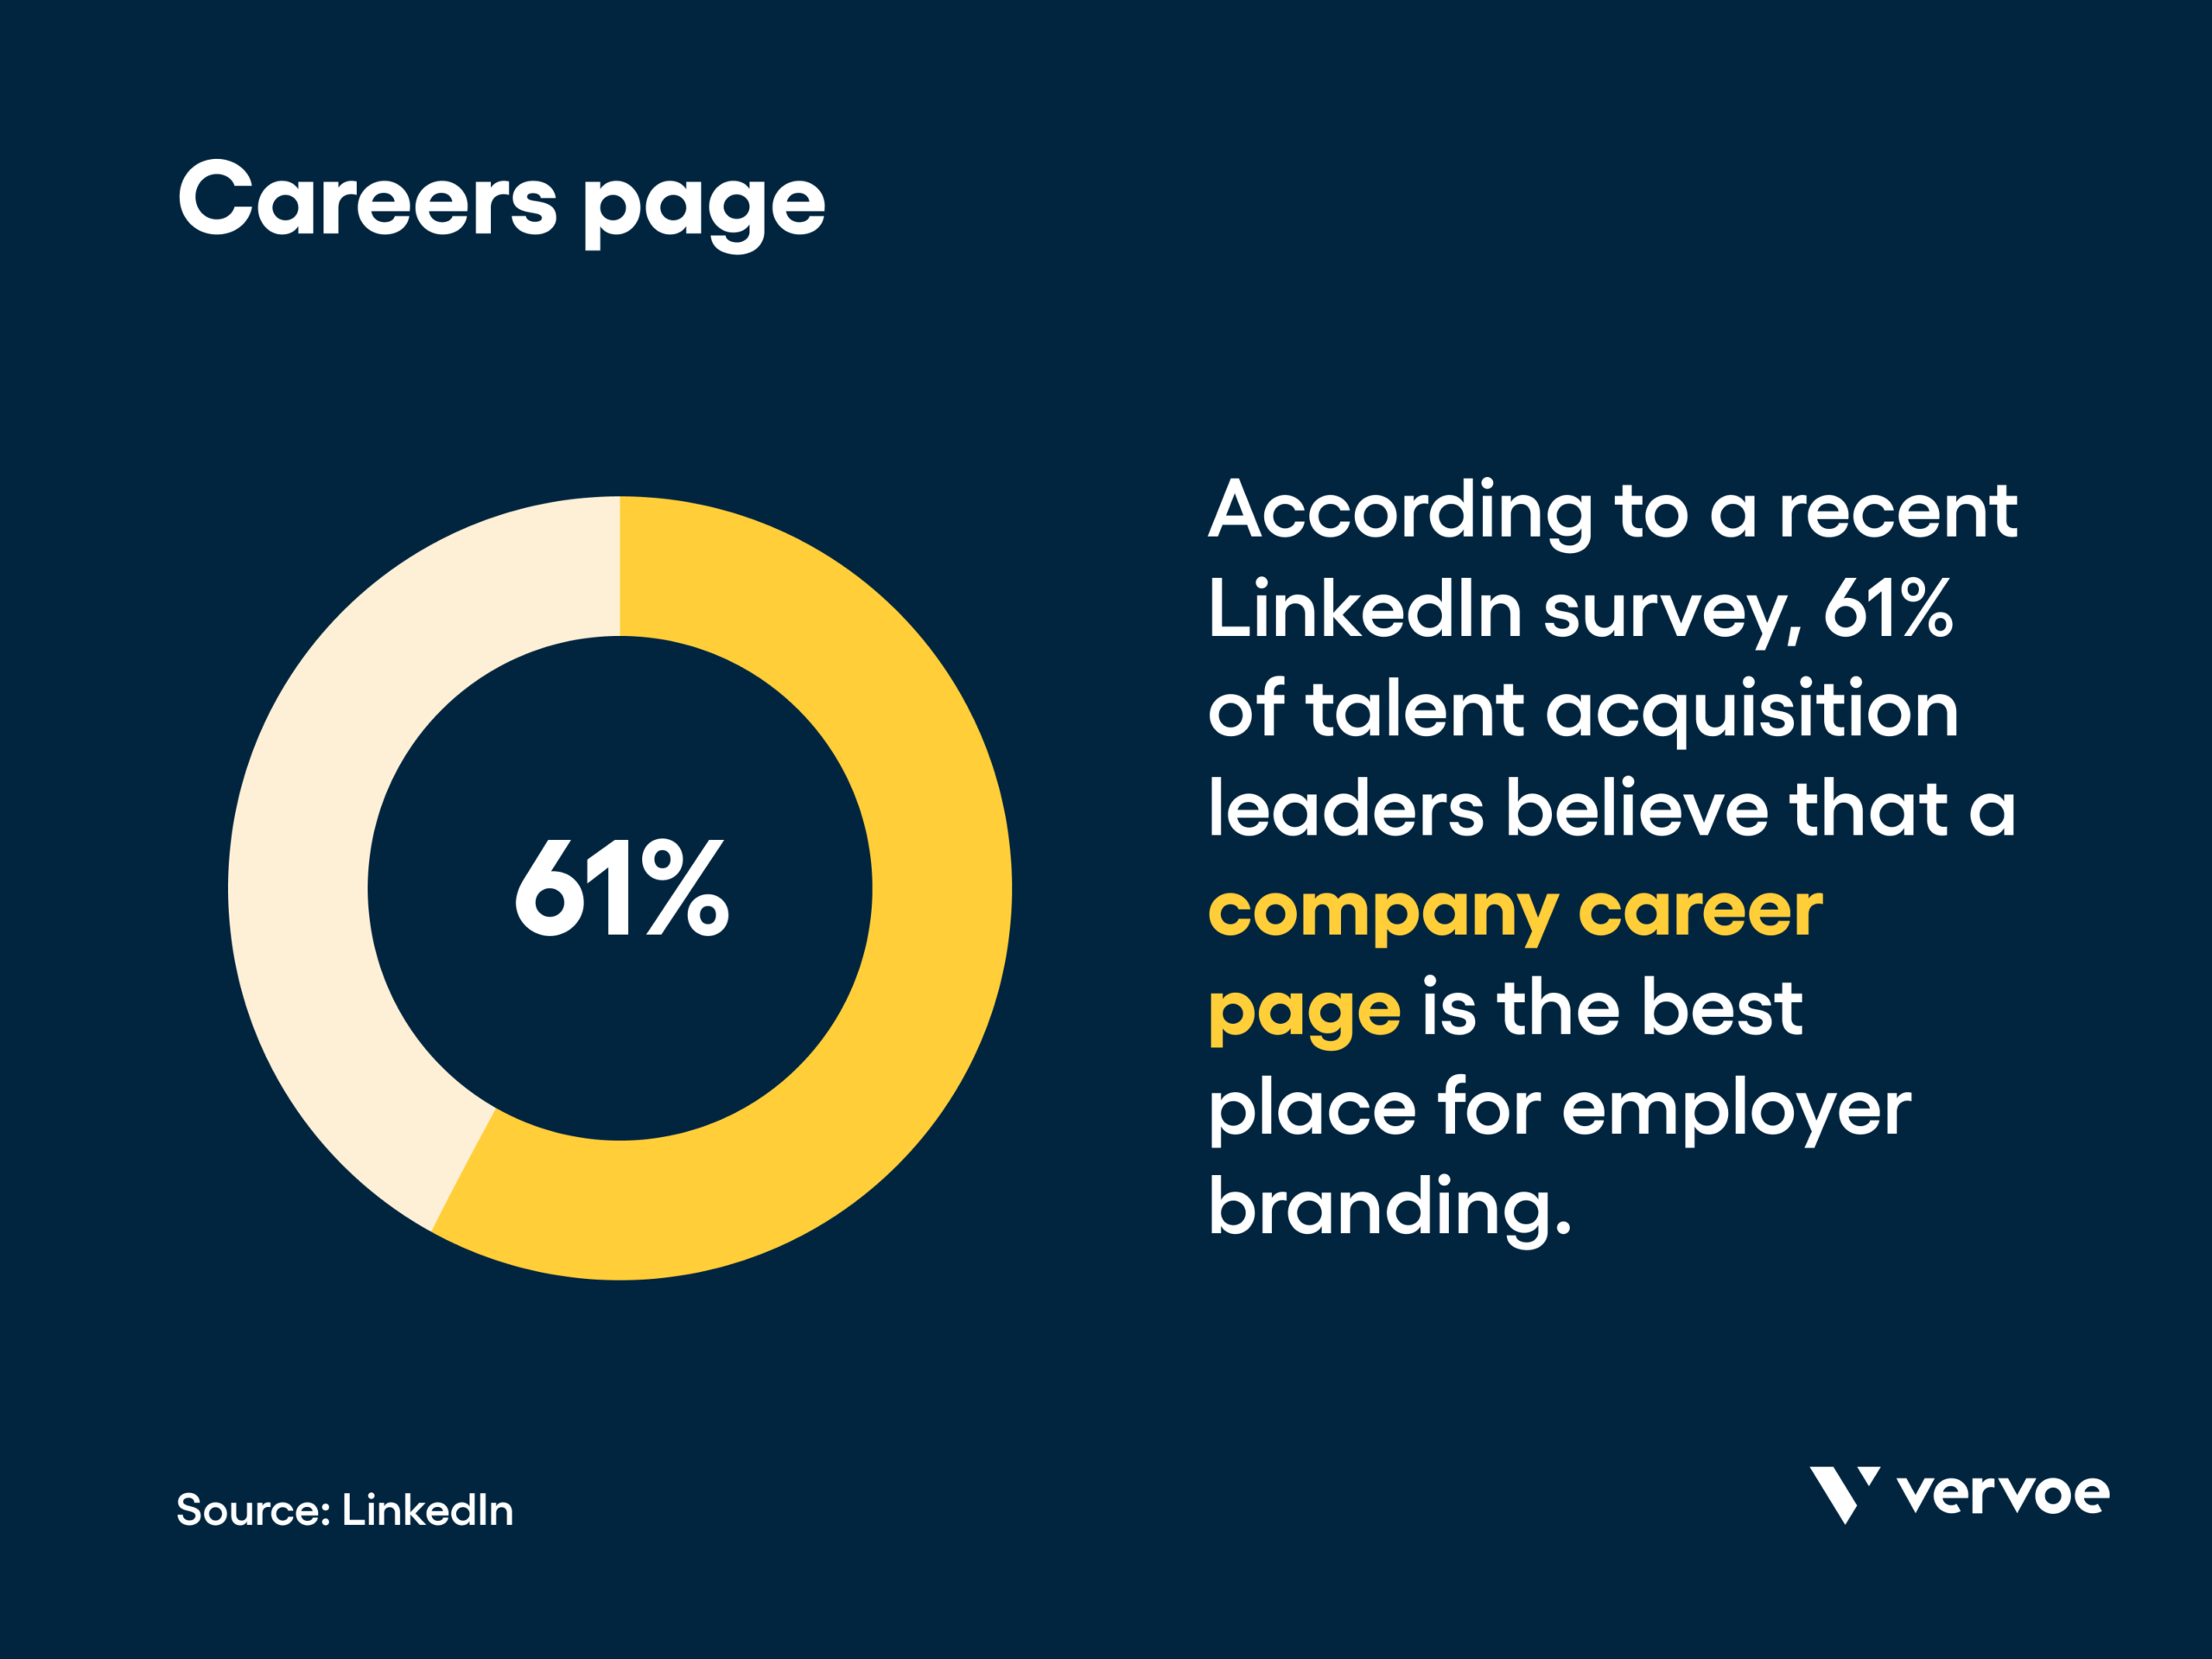 Infographic showing company careers page is best place for employer branding